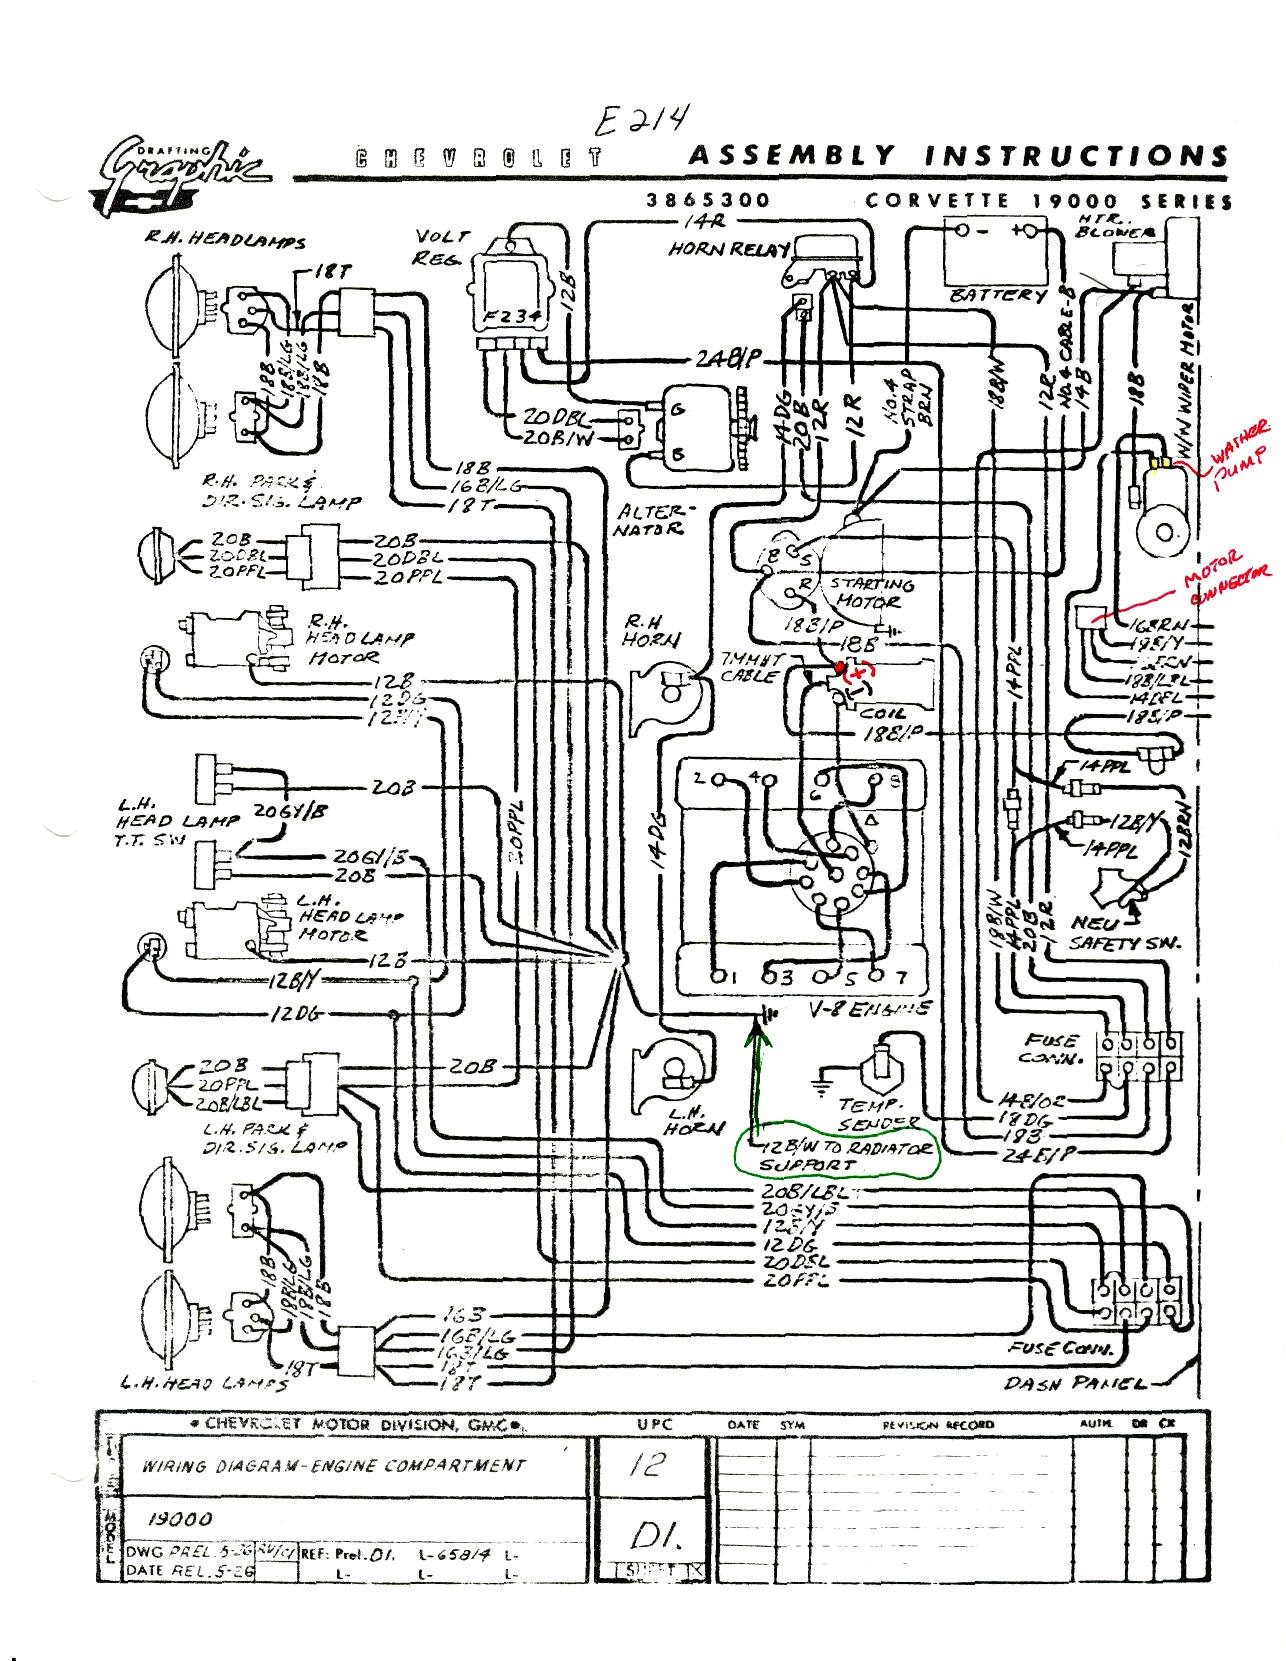 hight resolution of c6 engine harness diagram wiring diagram source 2003 trailblazer engine diagram c6 engine diagram